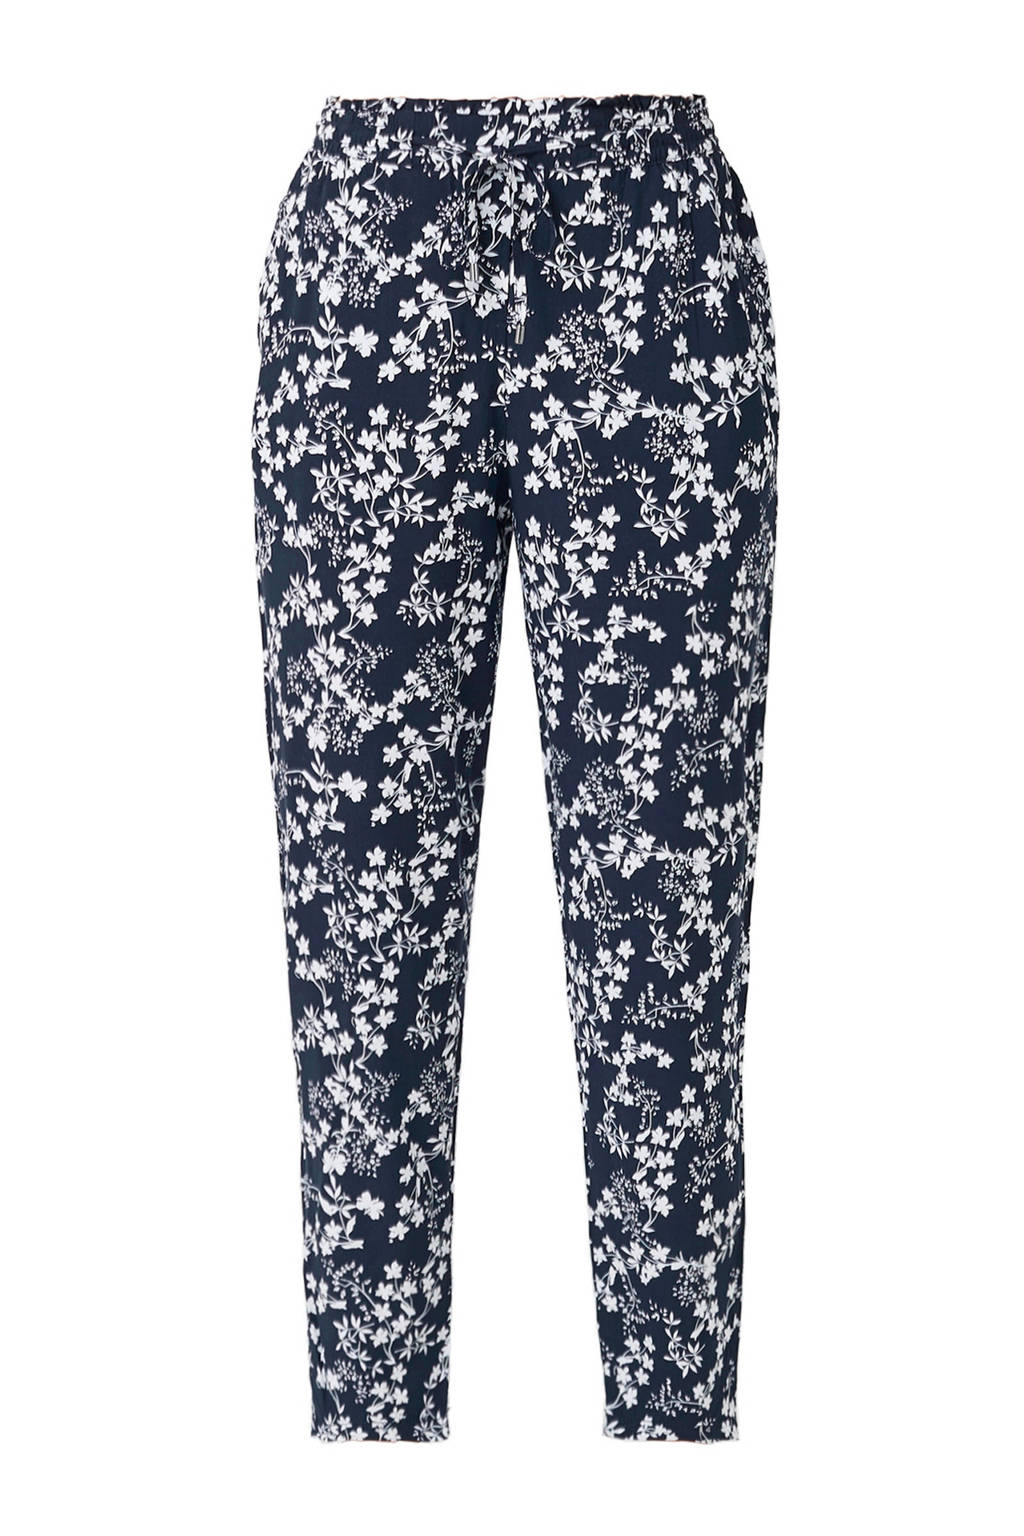 s.Oliver gebloemde cropped tapered fit broek marine/wit, Marine/wit